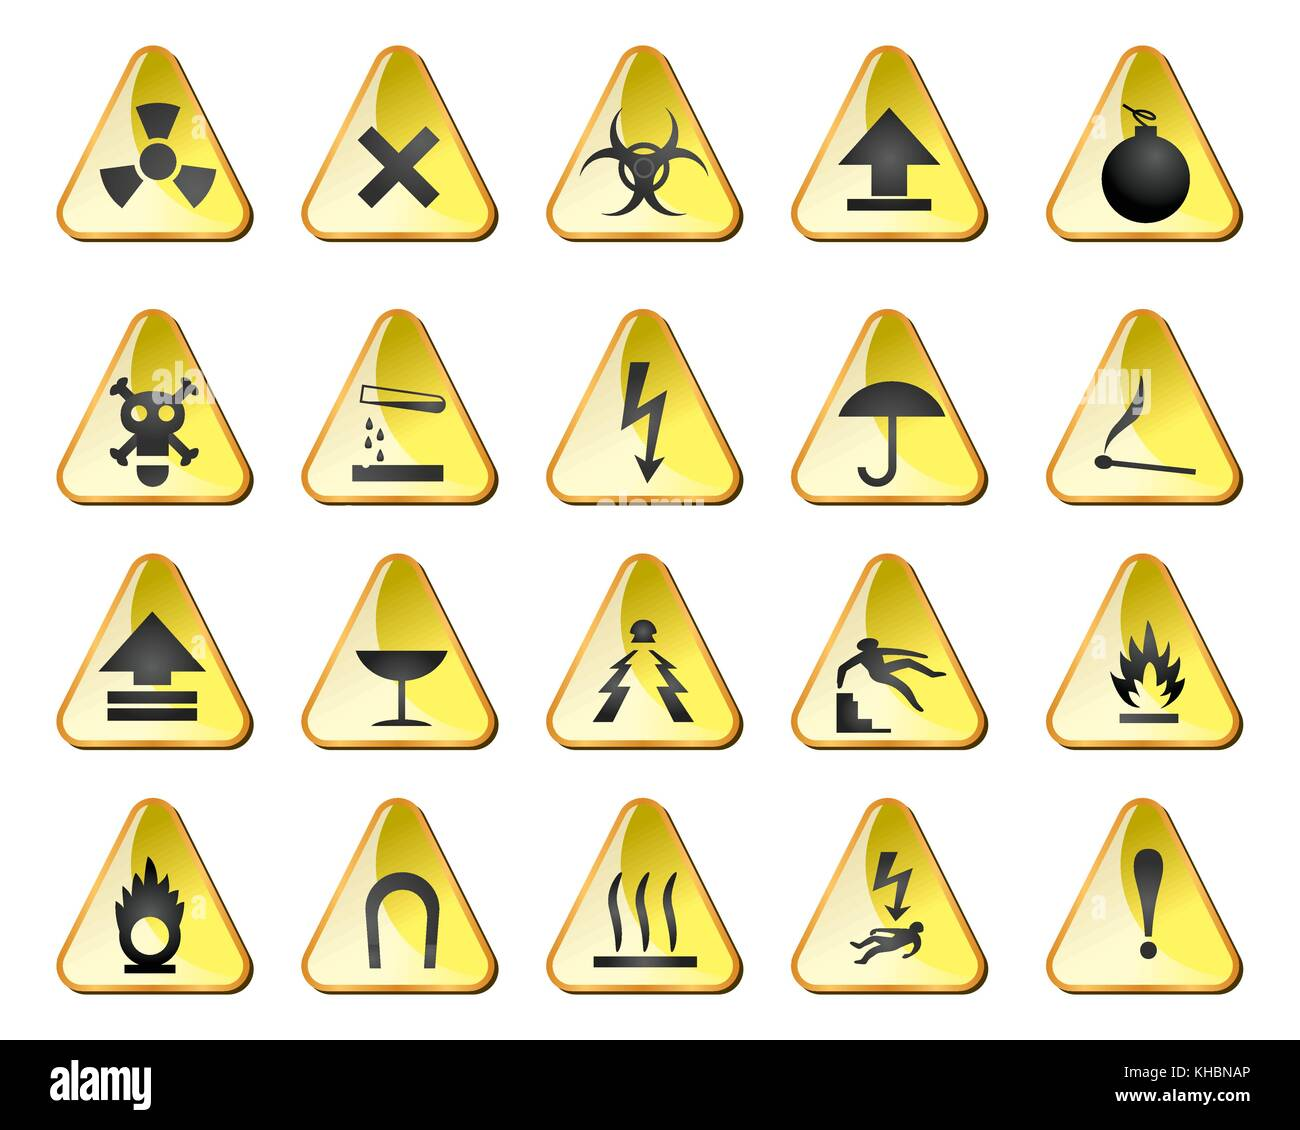 danger and industry icons - vector icon set - Stock Image